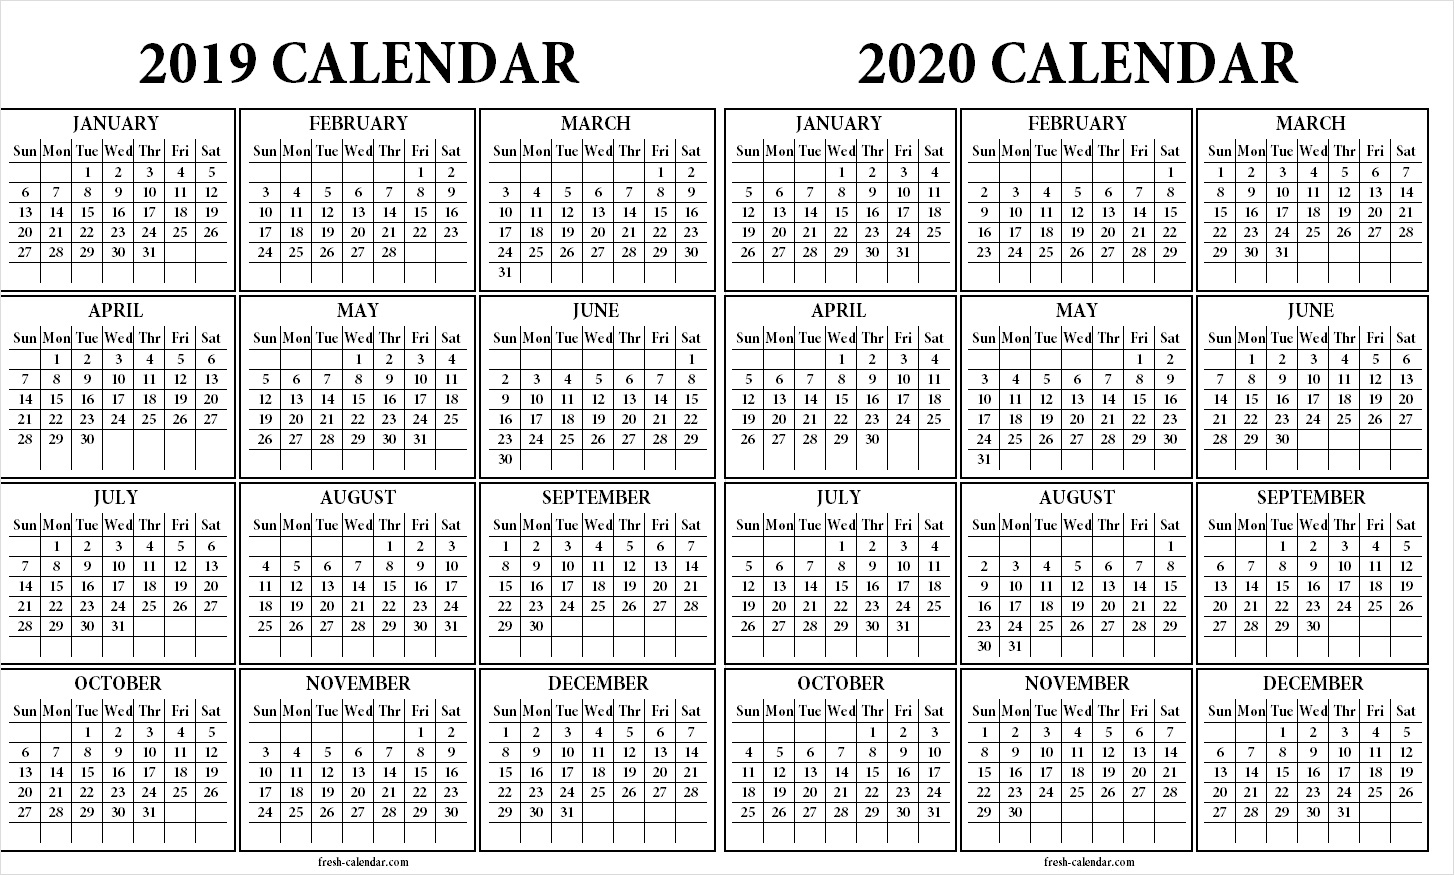 Two Yearly 2019 2020 Calendar Printable | Blank Calendar Template in Calander Single Page Printable 2019 2020